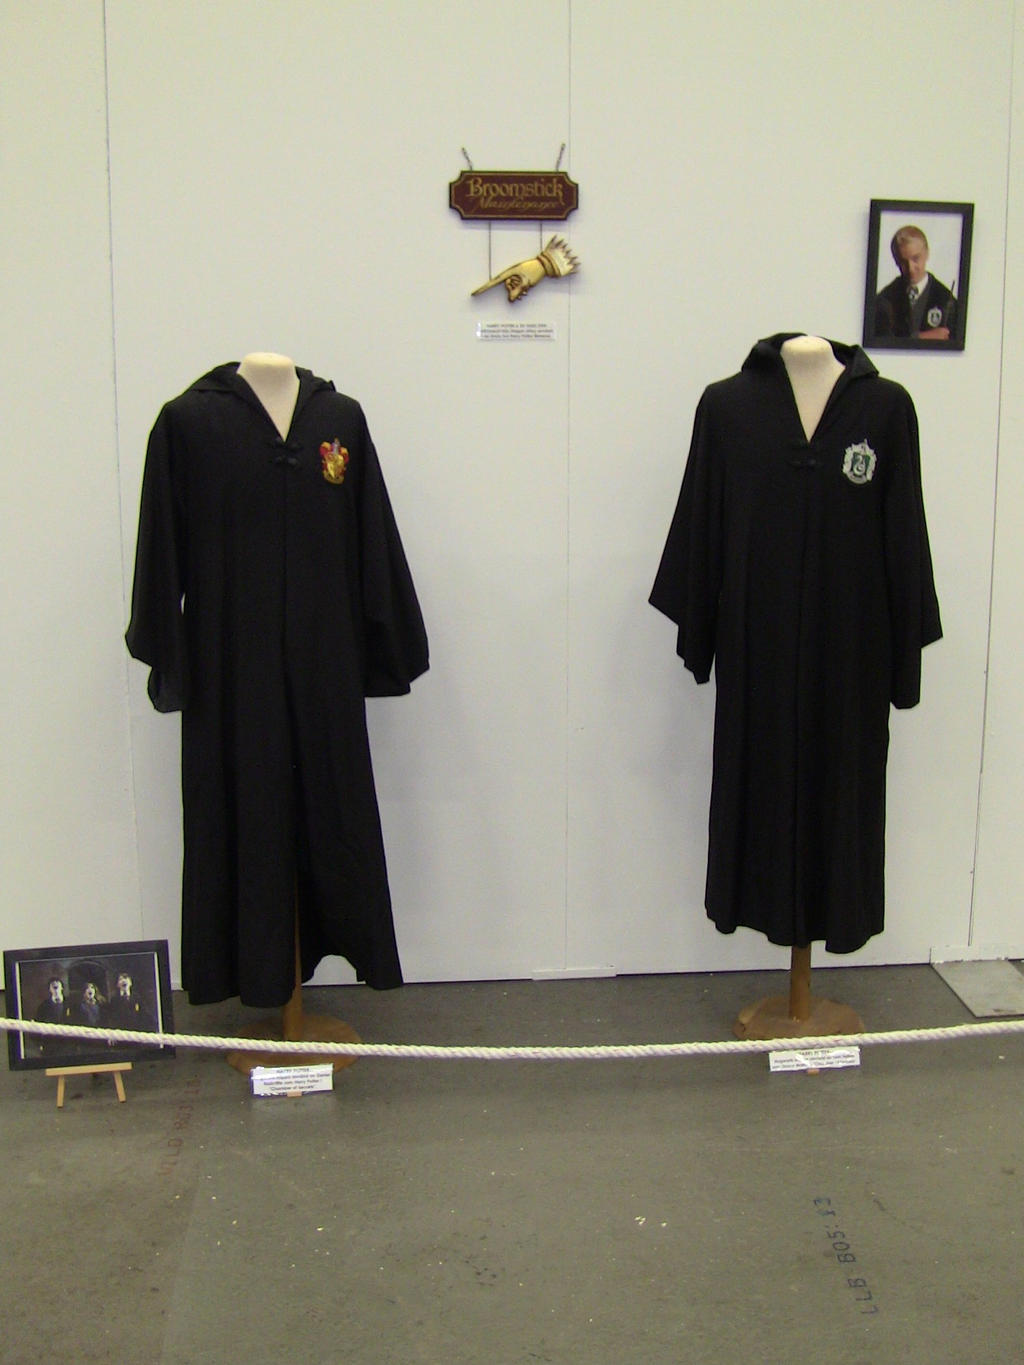 Harry Potter costumes by EgonEagle